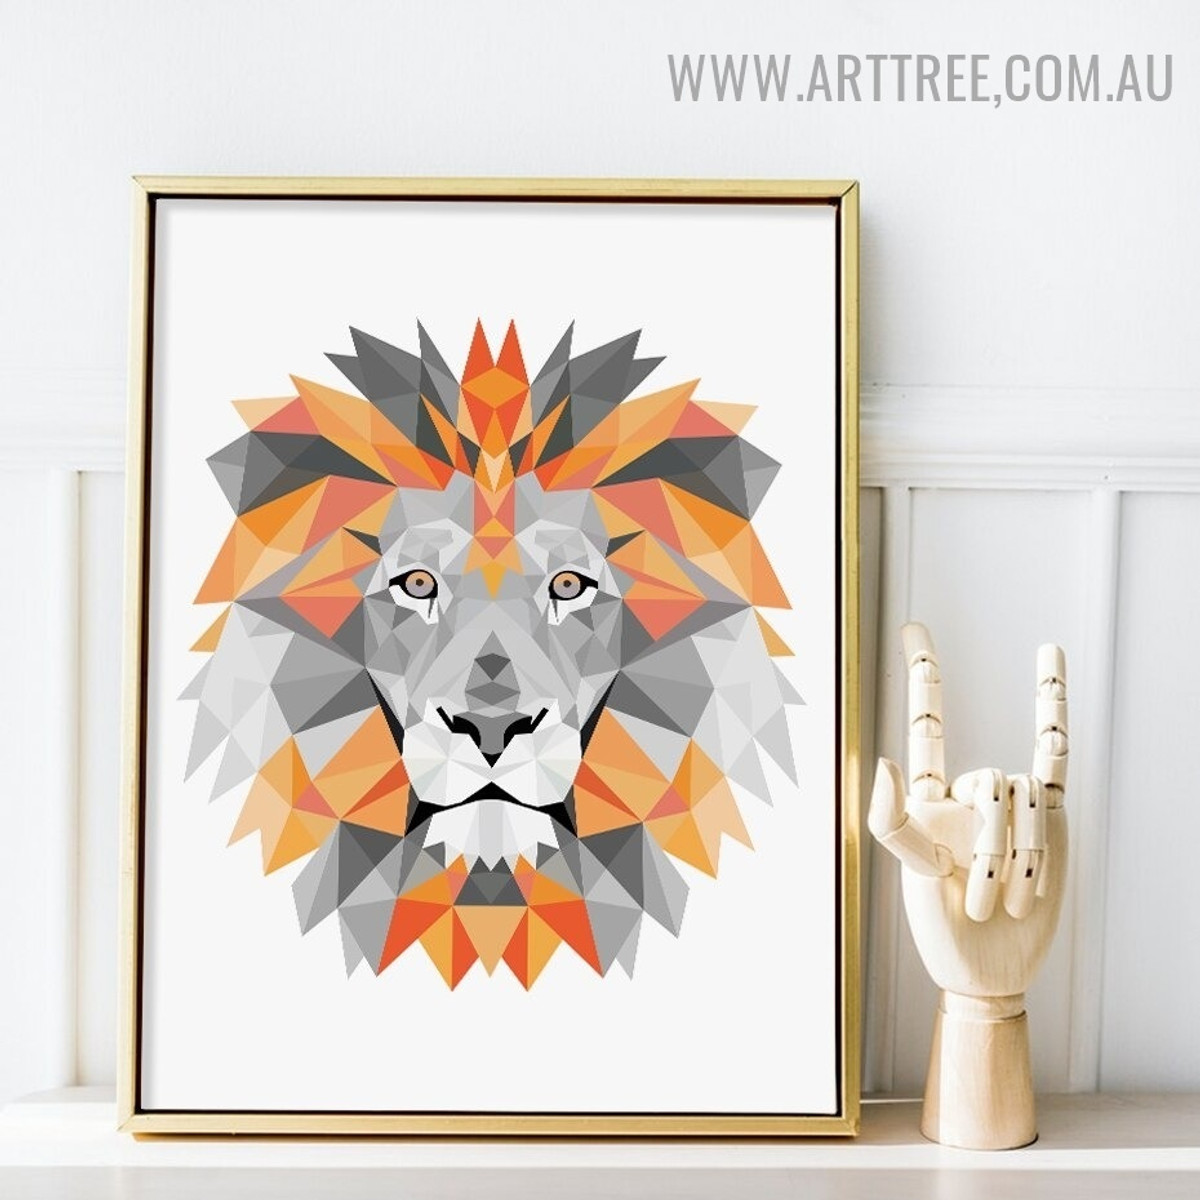 Motley Lion Triangles Modern Animal Picture Canvas Print Geometrical Artwork for Room Wall Ornament